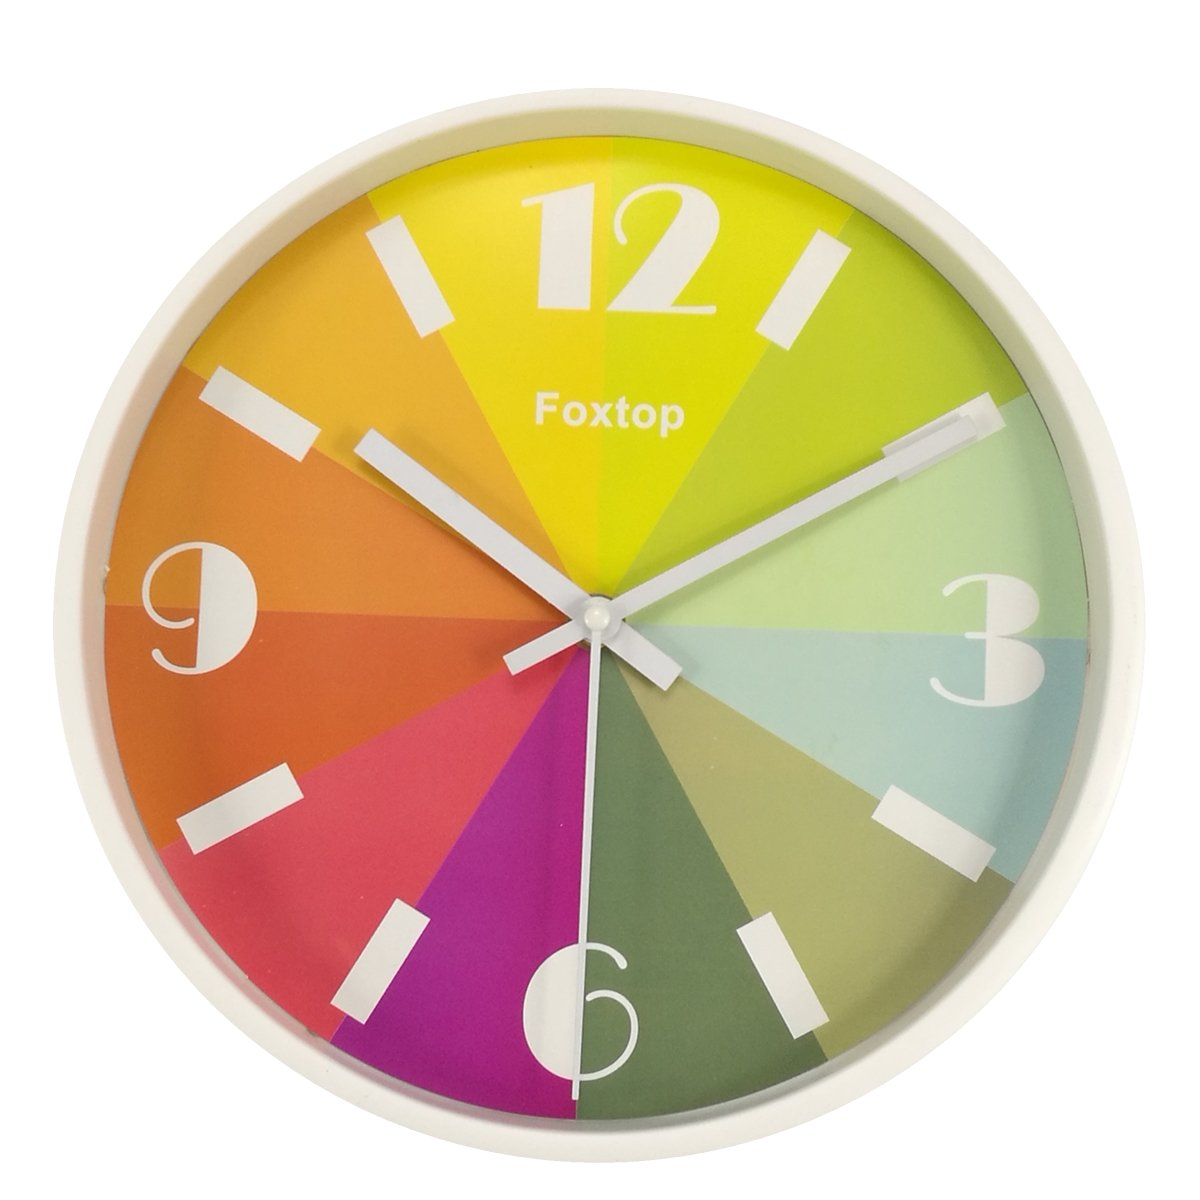 Amazon.com: Kids Wall Clock, Foxtop 10 inch Rainbow Silent Wall ...